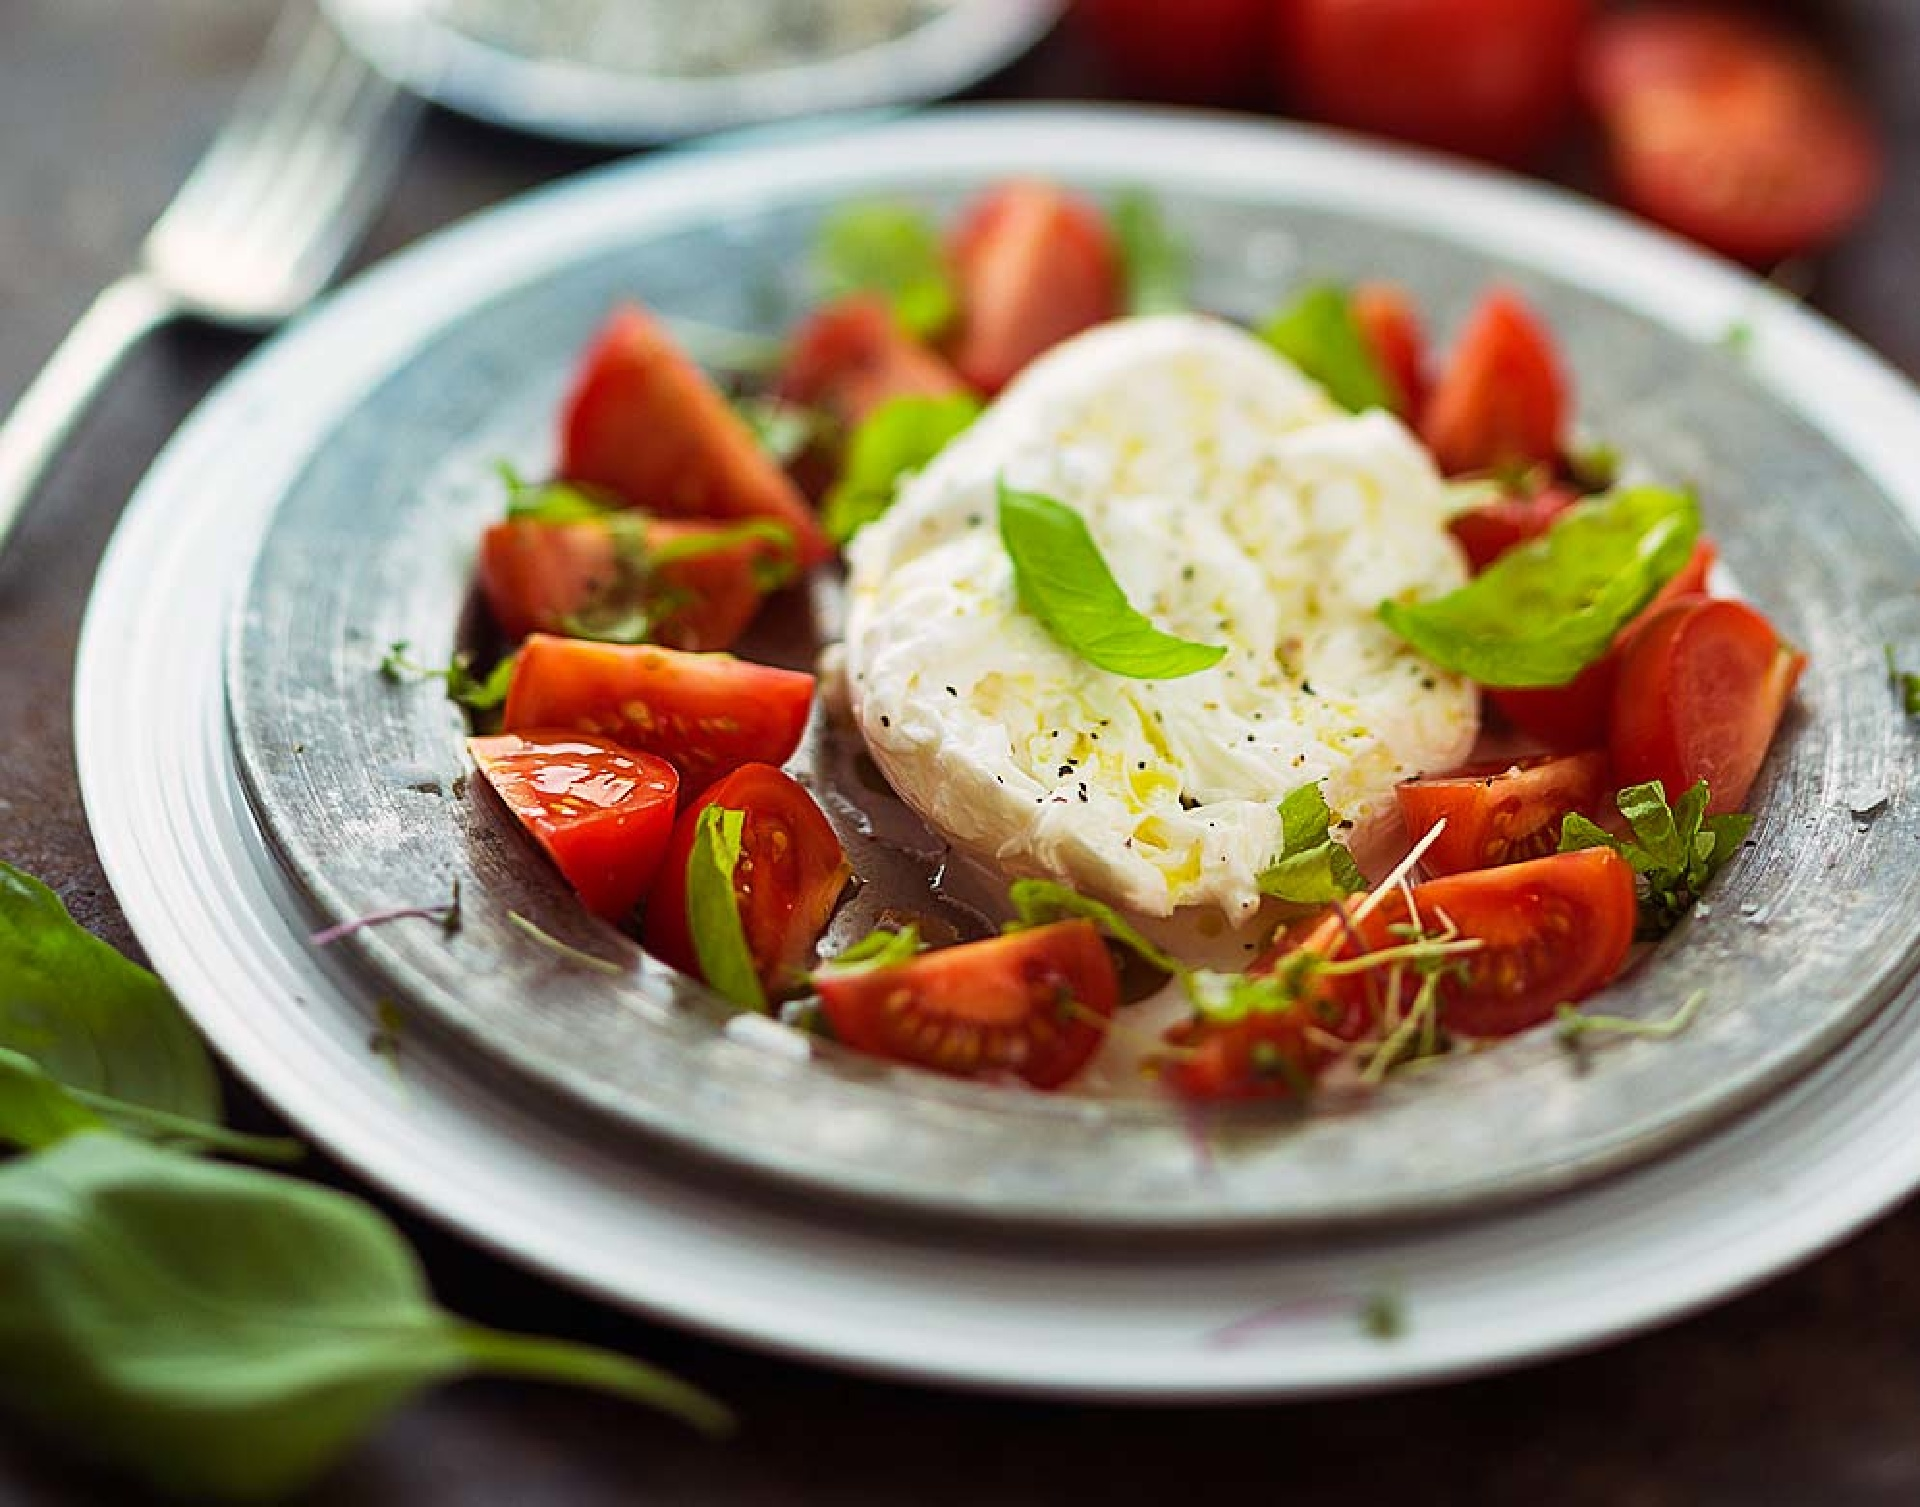 https://addressrealestate.com/media/images/blogs/80/2/b_heirloom-tomato-watermelon-and-burrata-salad-with-shiso.jpg